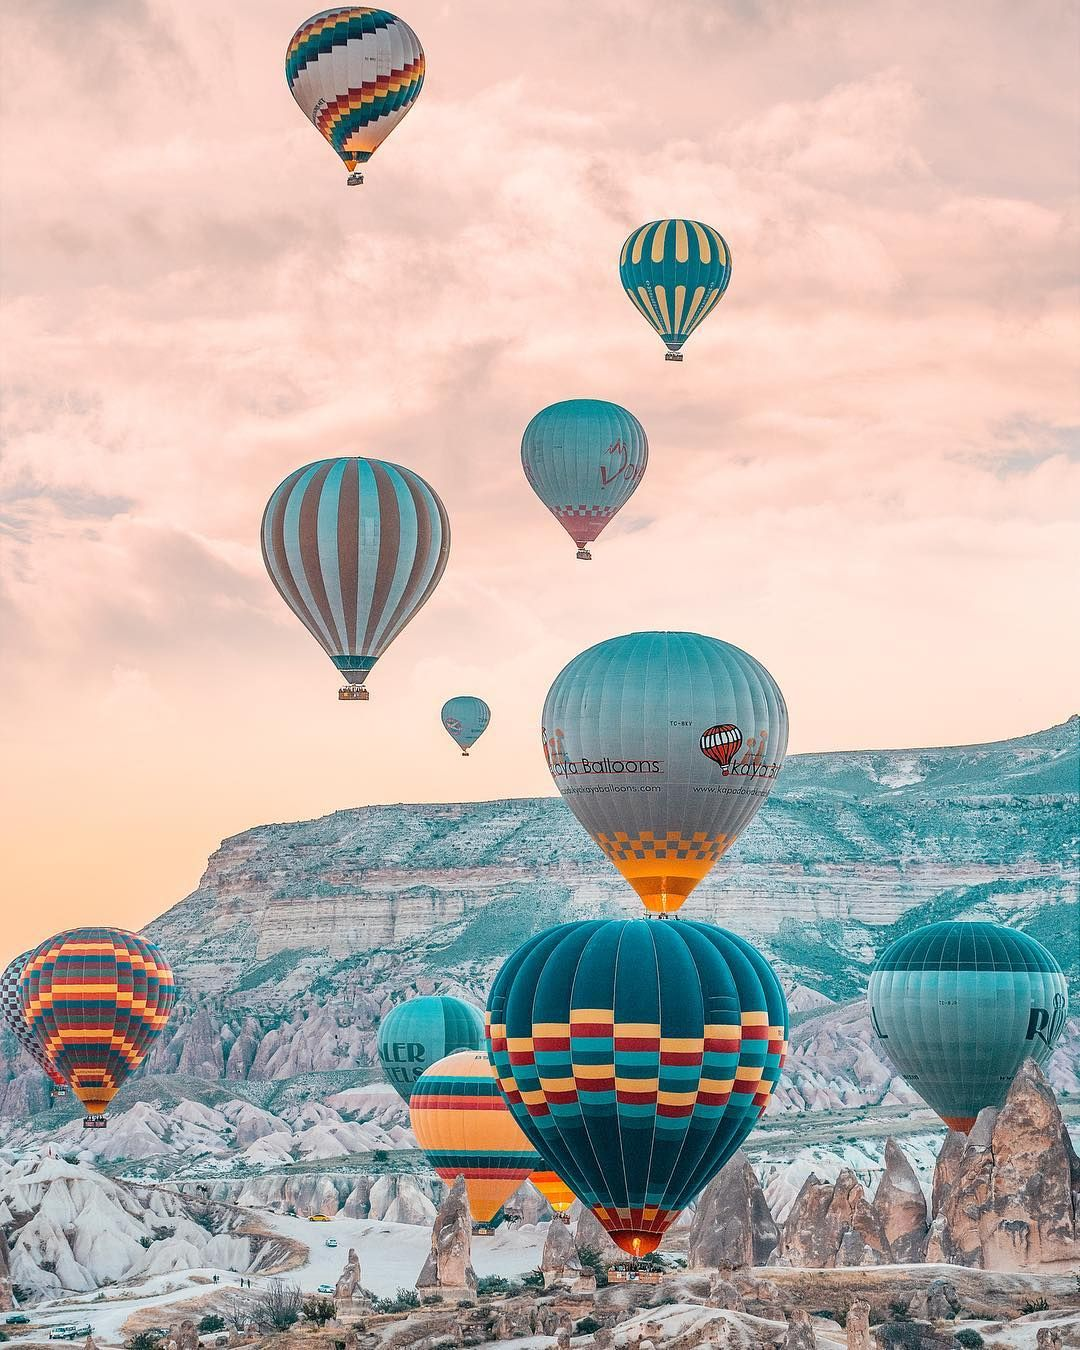 Beautiful hot air balloons floating over Cappadocia